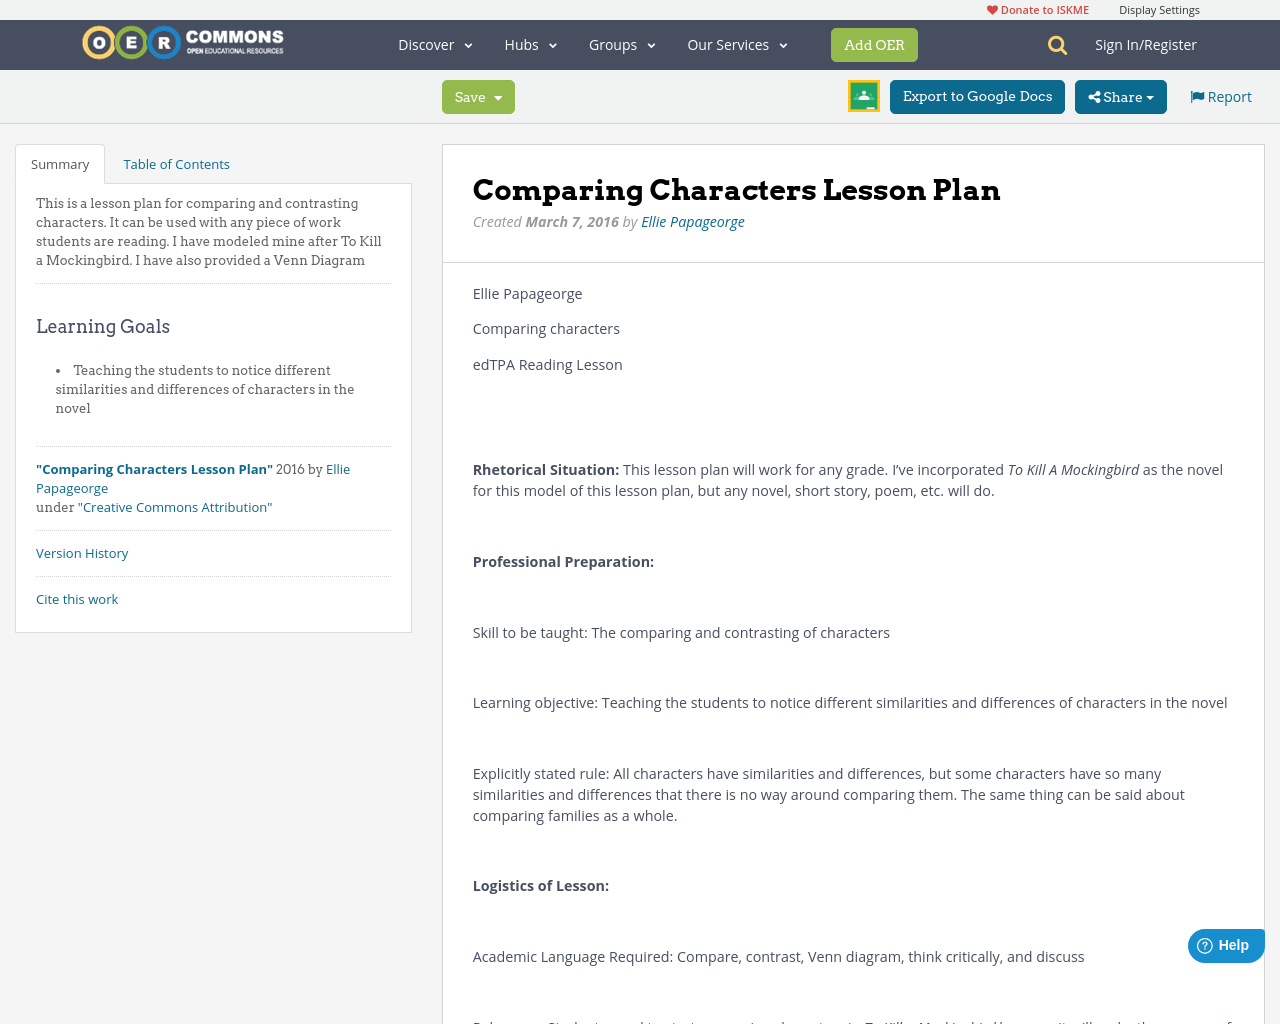 Comparing characters lesson plan oer commons pooptronica Gallery